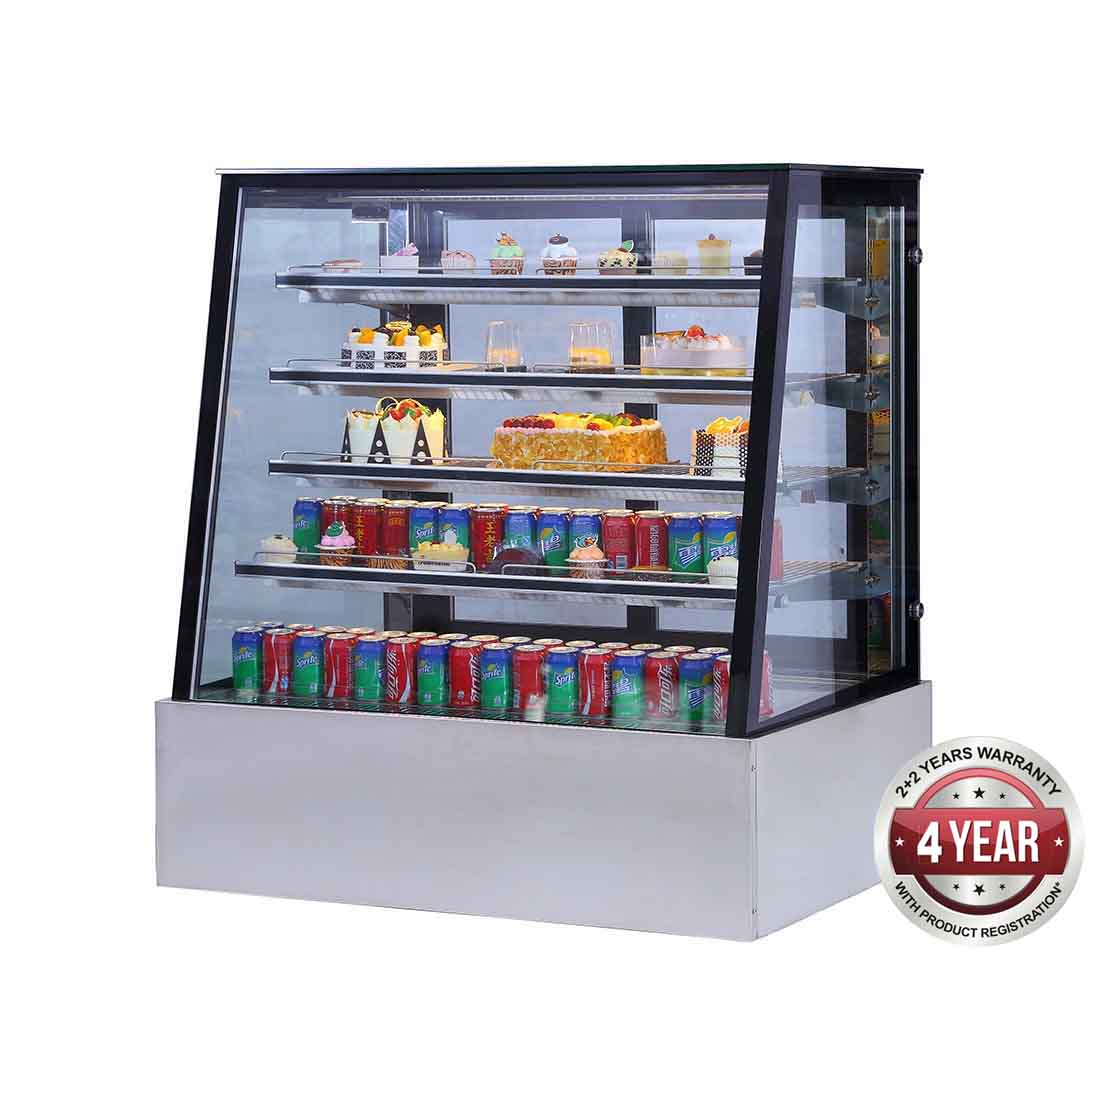 SLP880C Bonvue Deluxe Chilled Display Cabinet 2400x800x1350